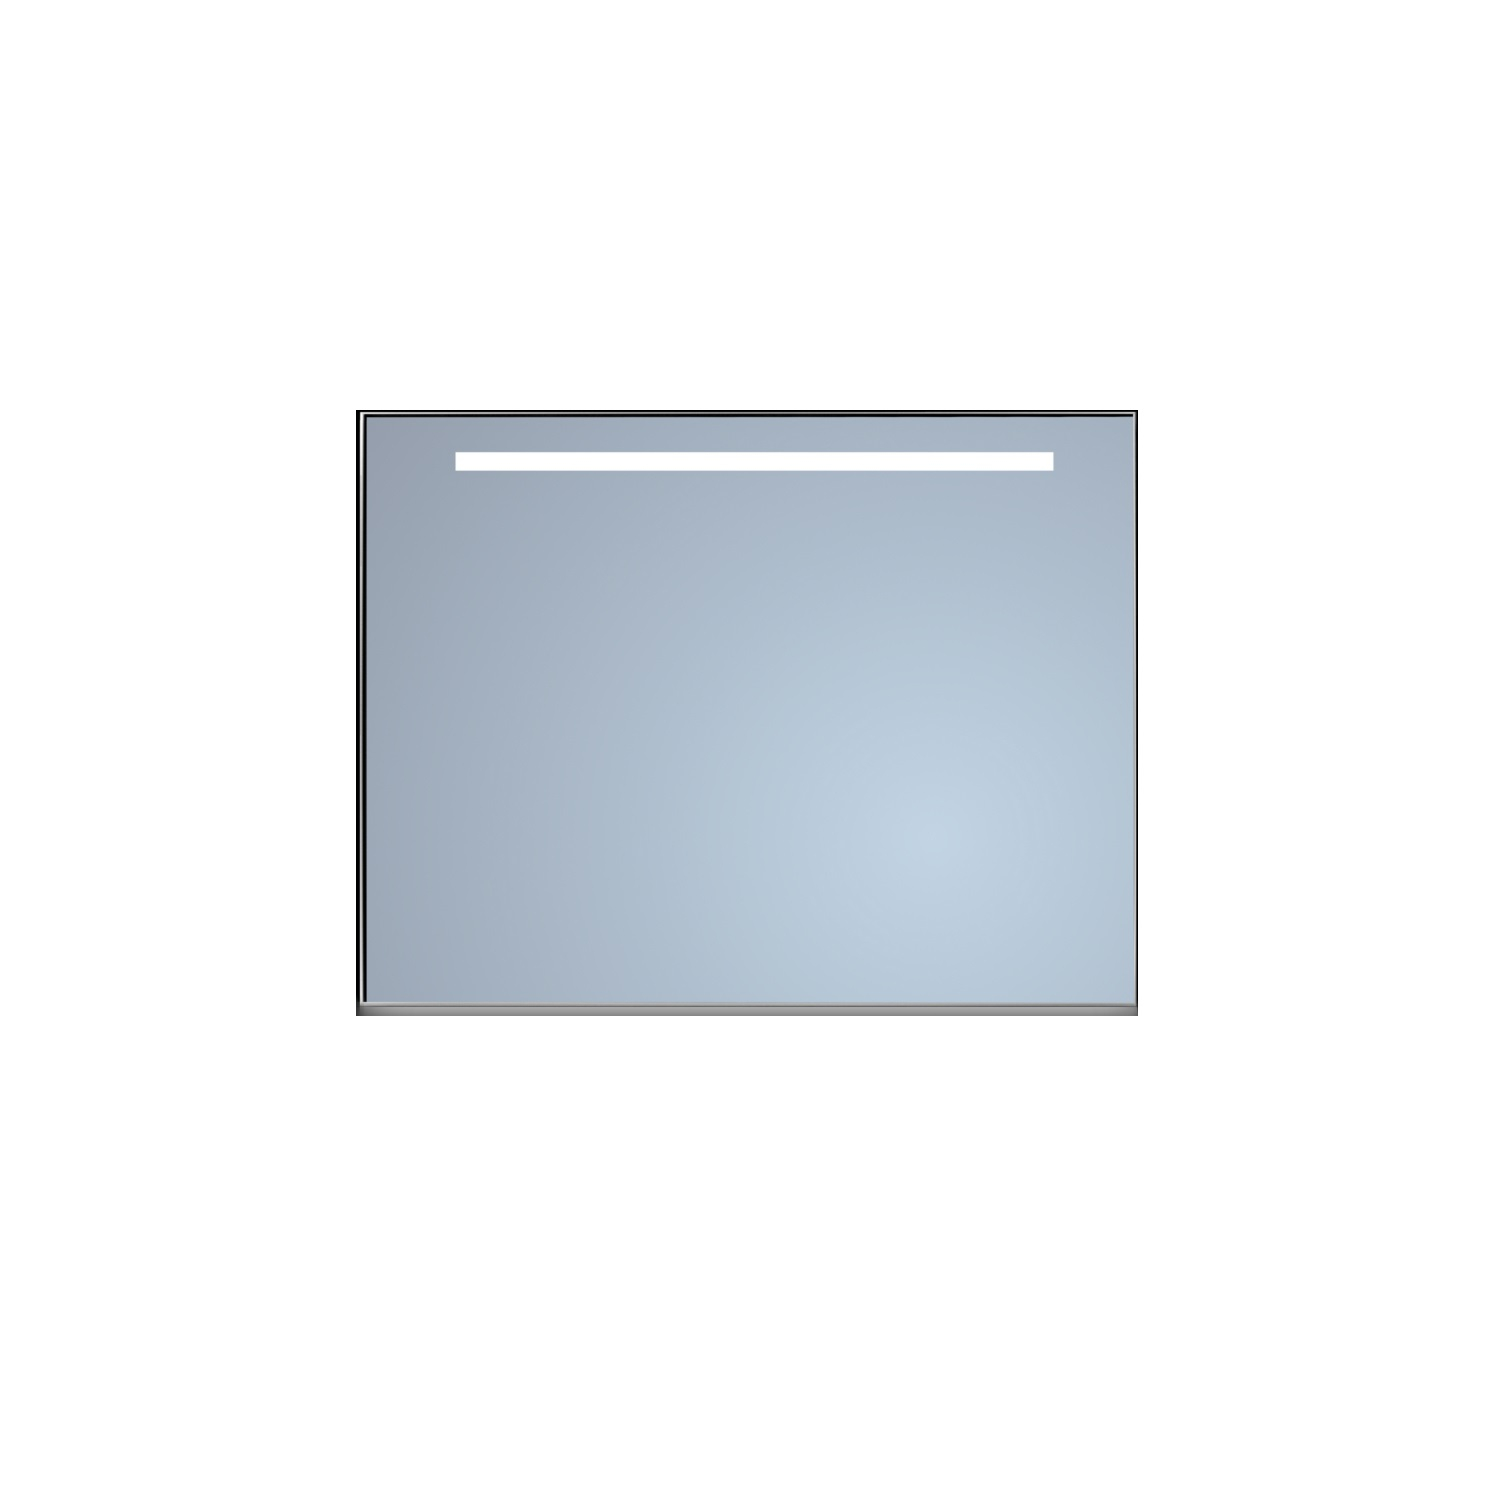 Badkamerspiegel Sanicare Q-Mirrors Ambiance en 'Cold White' LED-verlichting 70x100x3,5 Alu Omlijsting